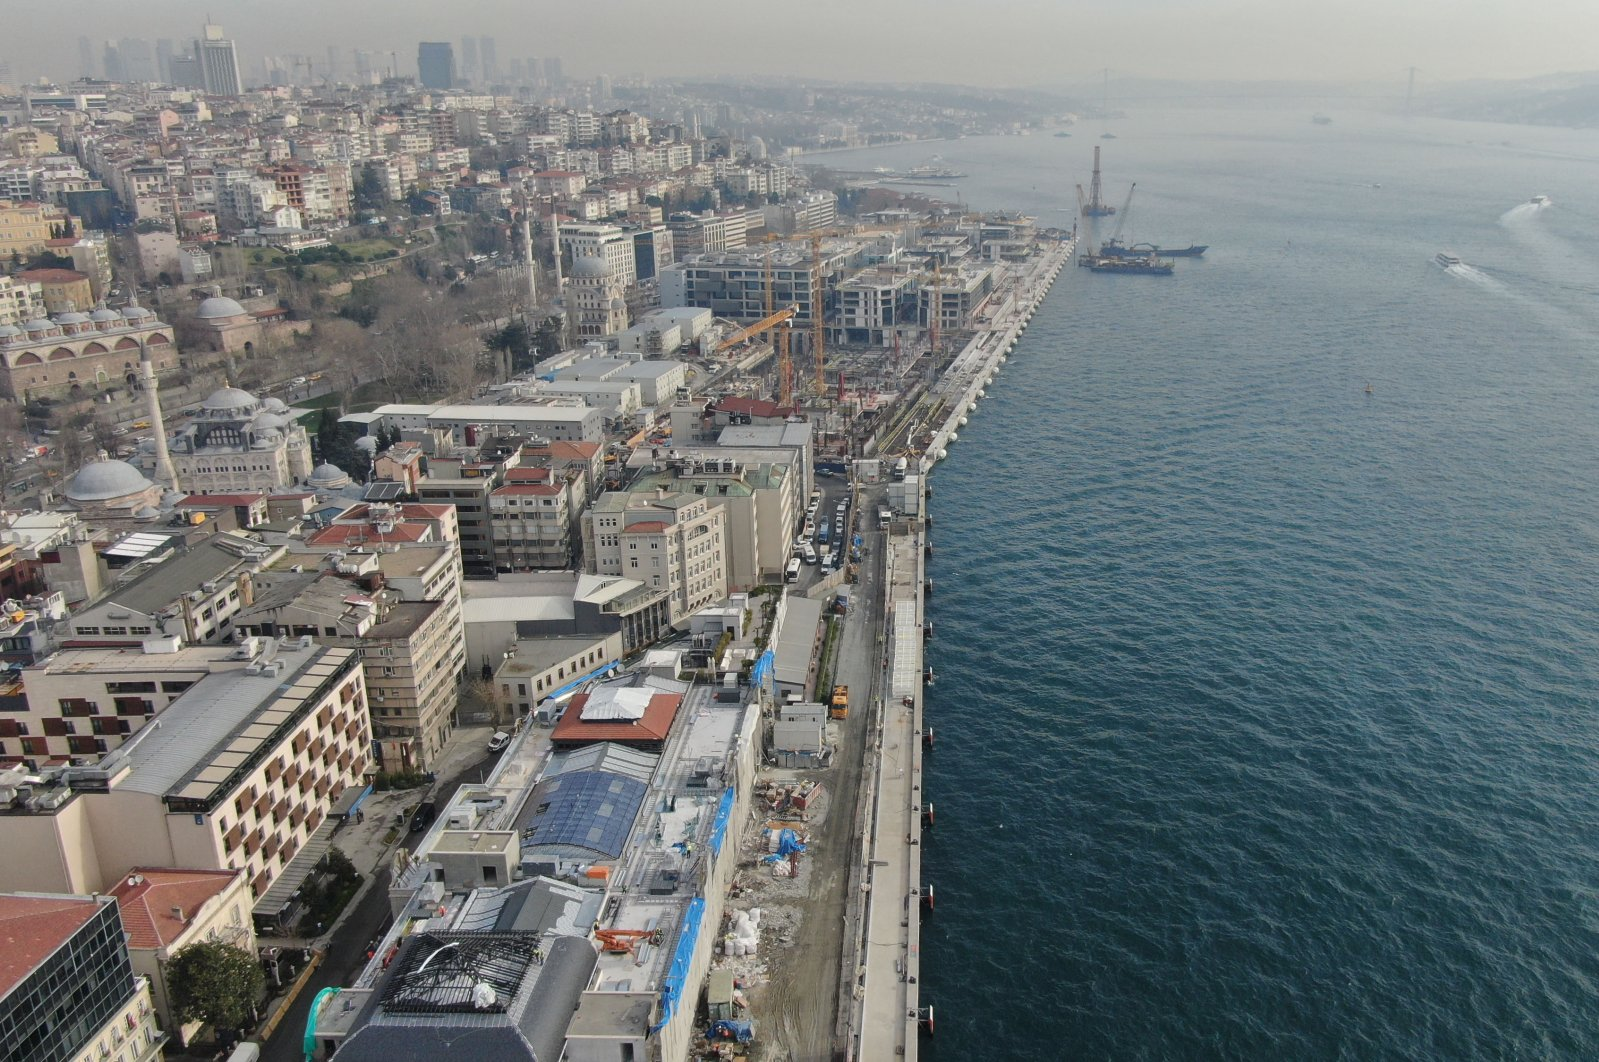 An aerial photo of the under-construction Galataport project located on the shore along Istanbul's central Karaköy district, on Sunday, March 8, 2020. (DHA Photo)